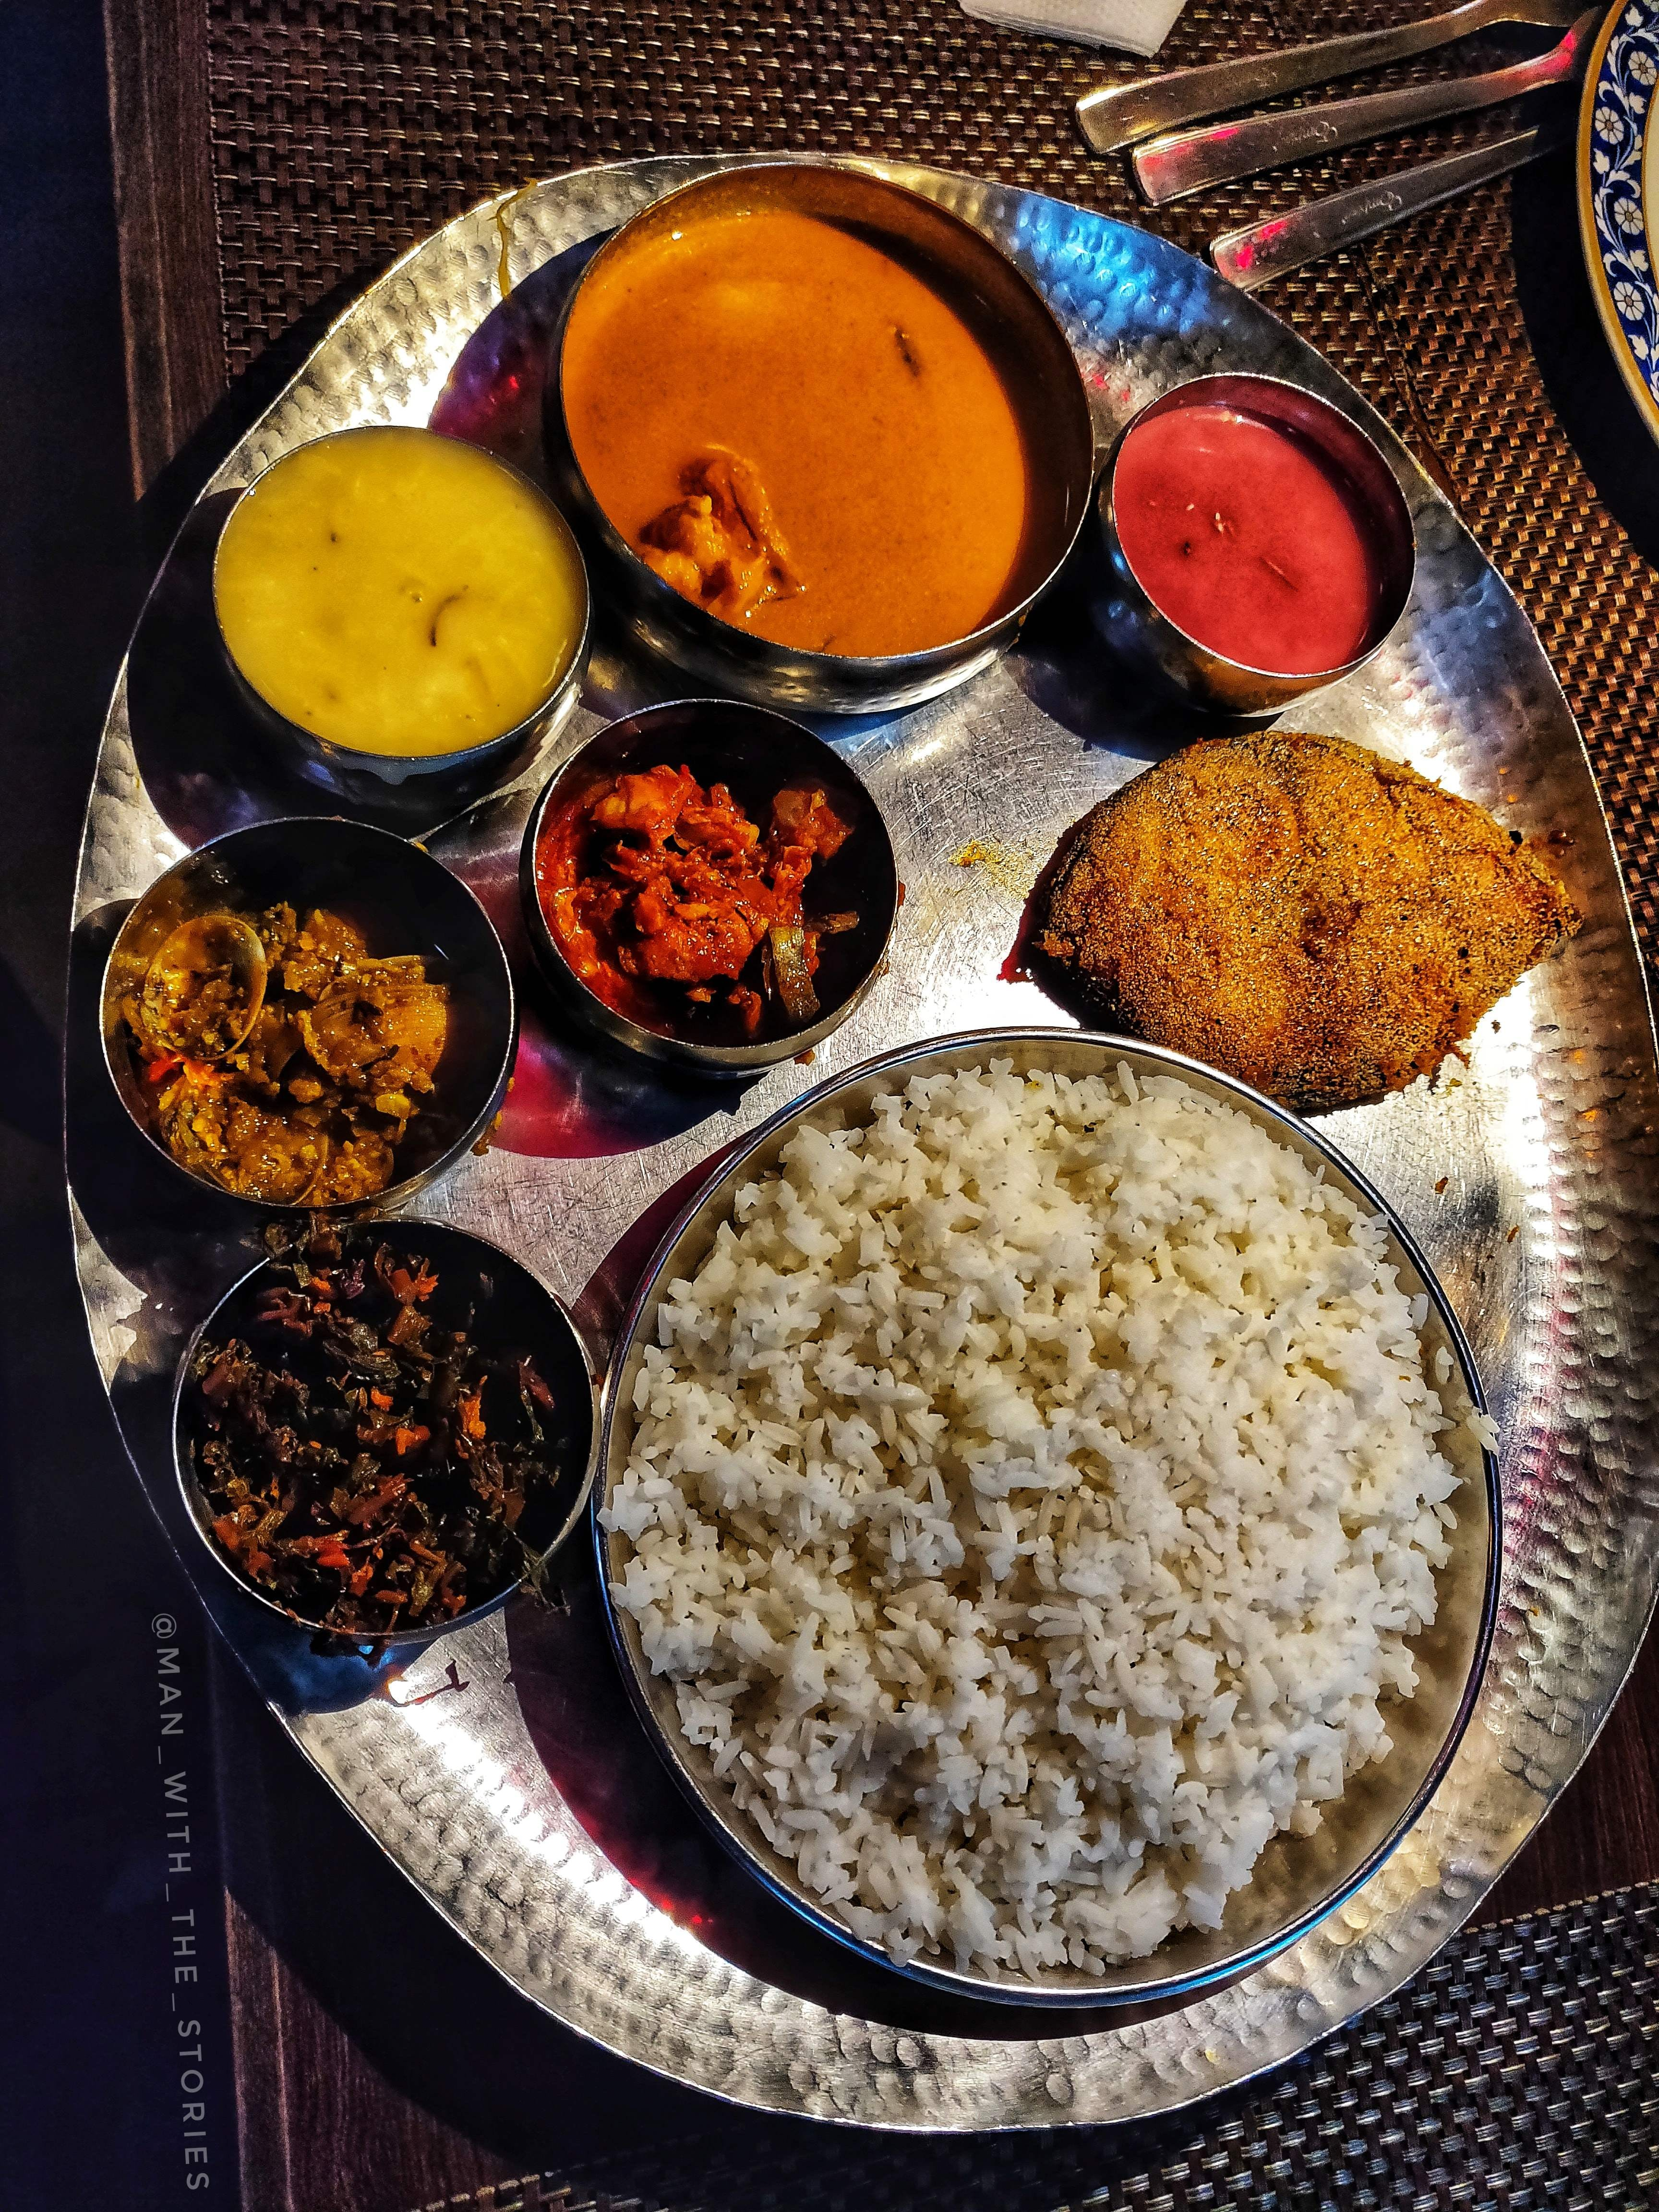 Dish,Food,Cuisine,Ingredient,Meal,Nepalese cuisine,Lunch,Produce,Sindhi cuisine,Dal